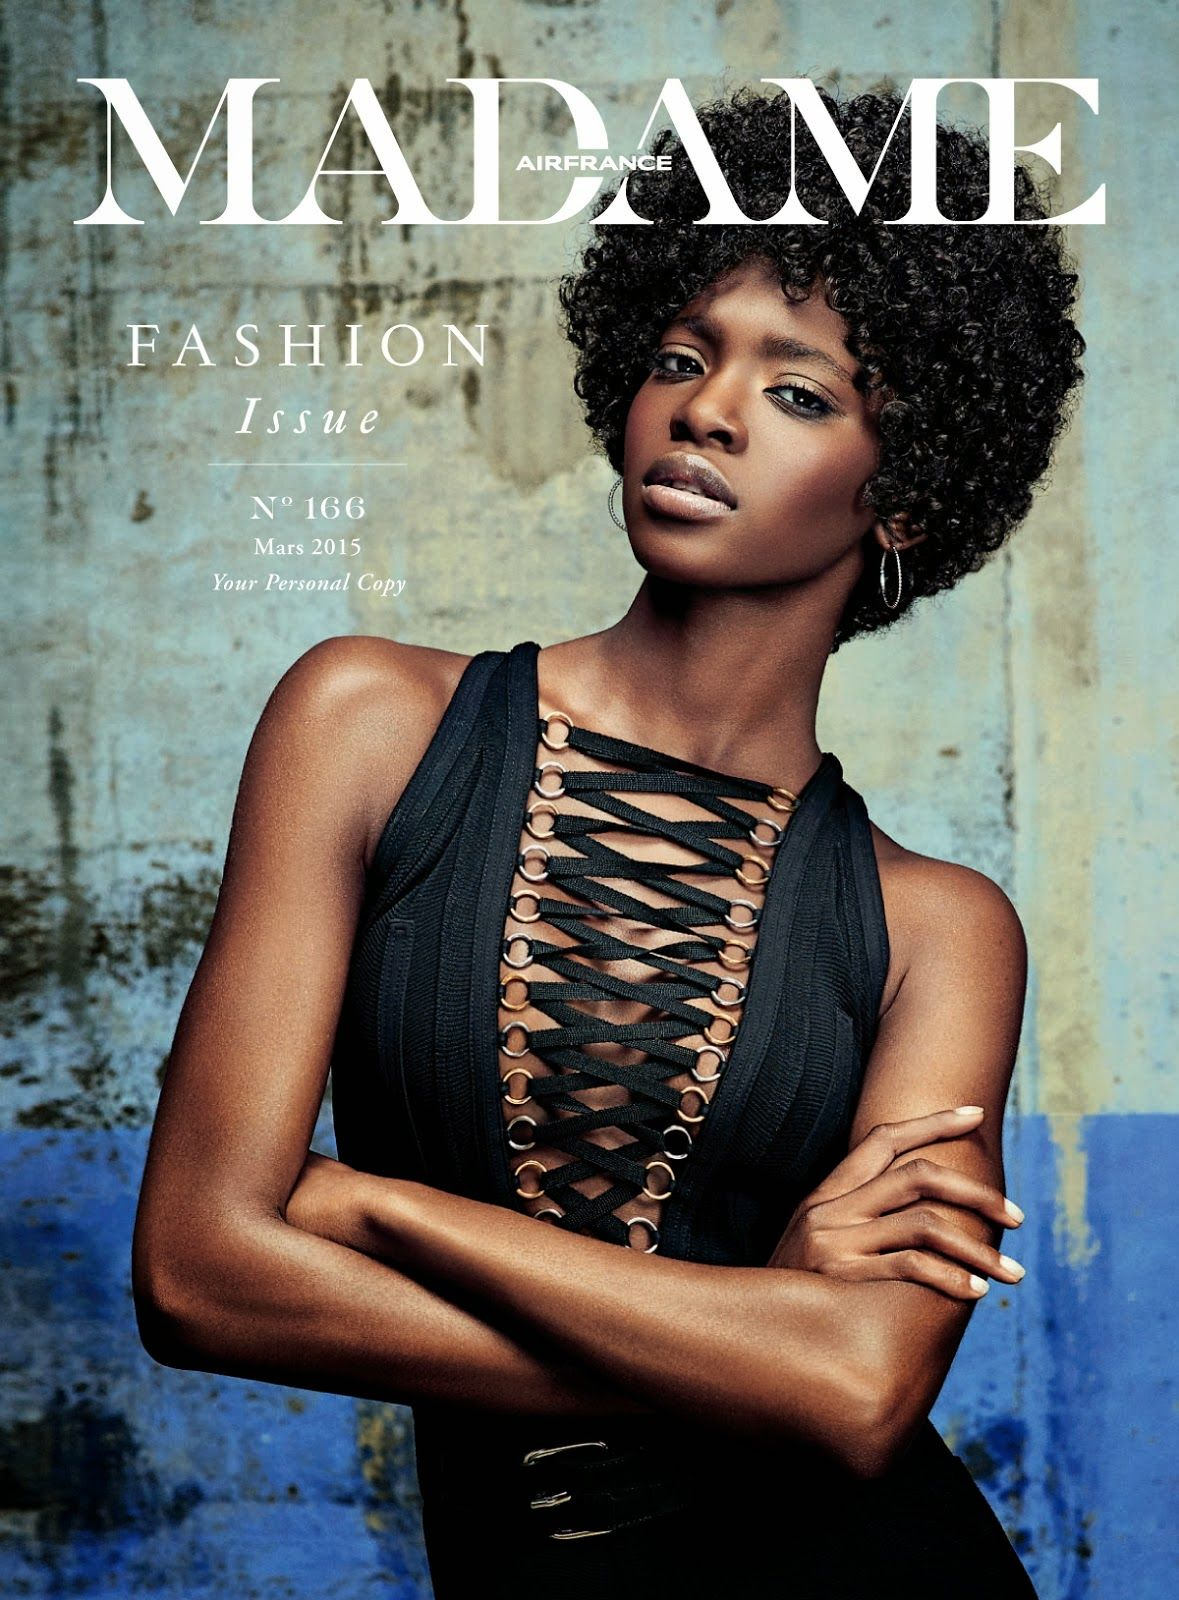 """Remember My Name"" Marie Fofana by Christian Anwander for Air France Madame March 2015"